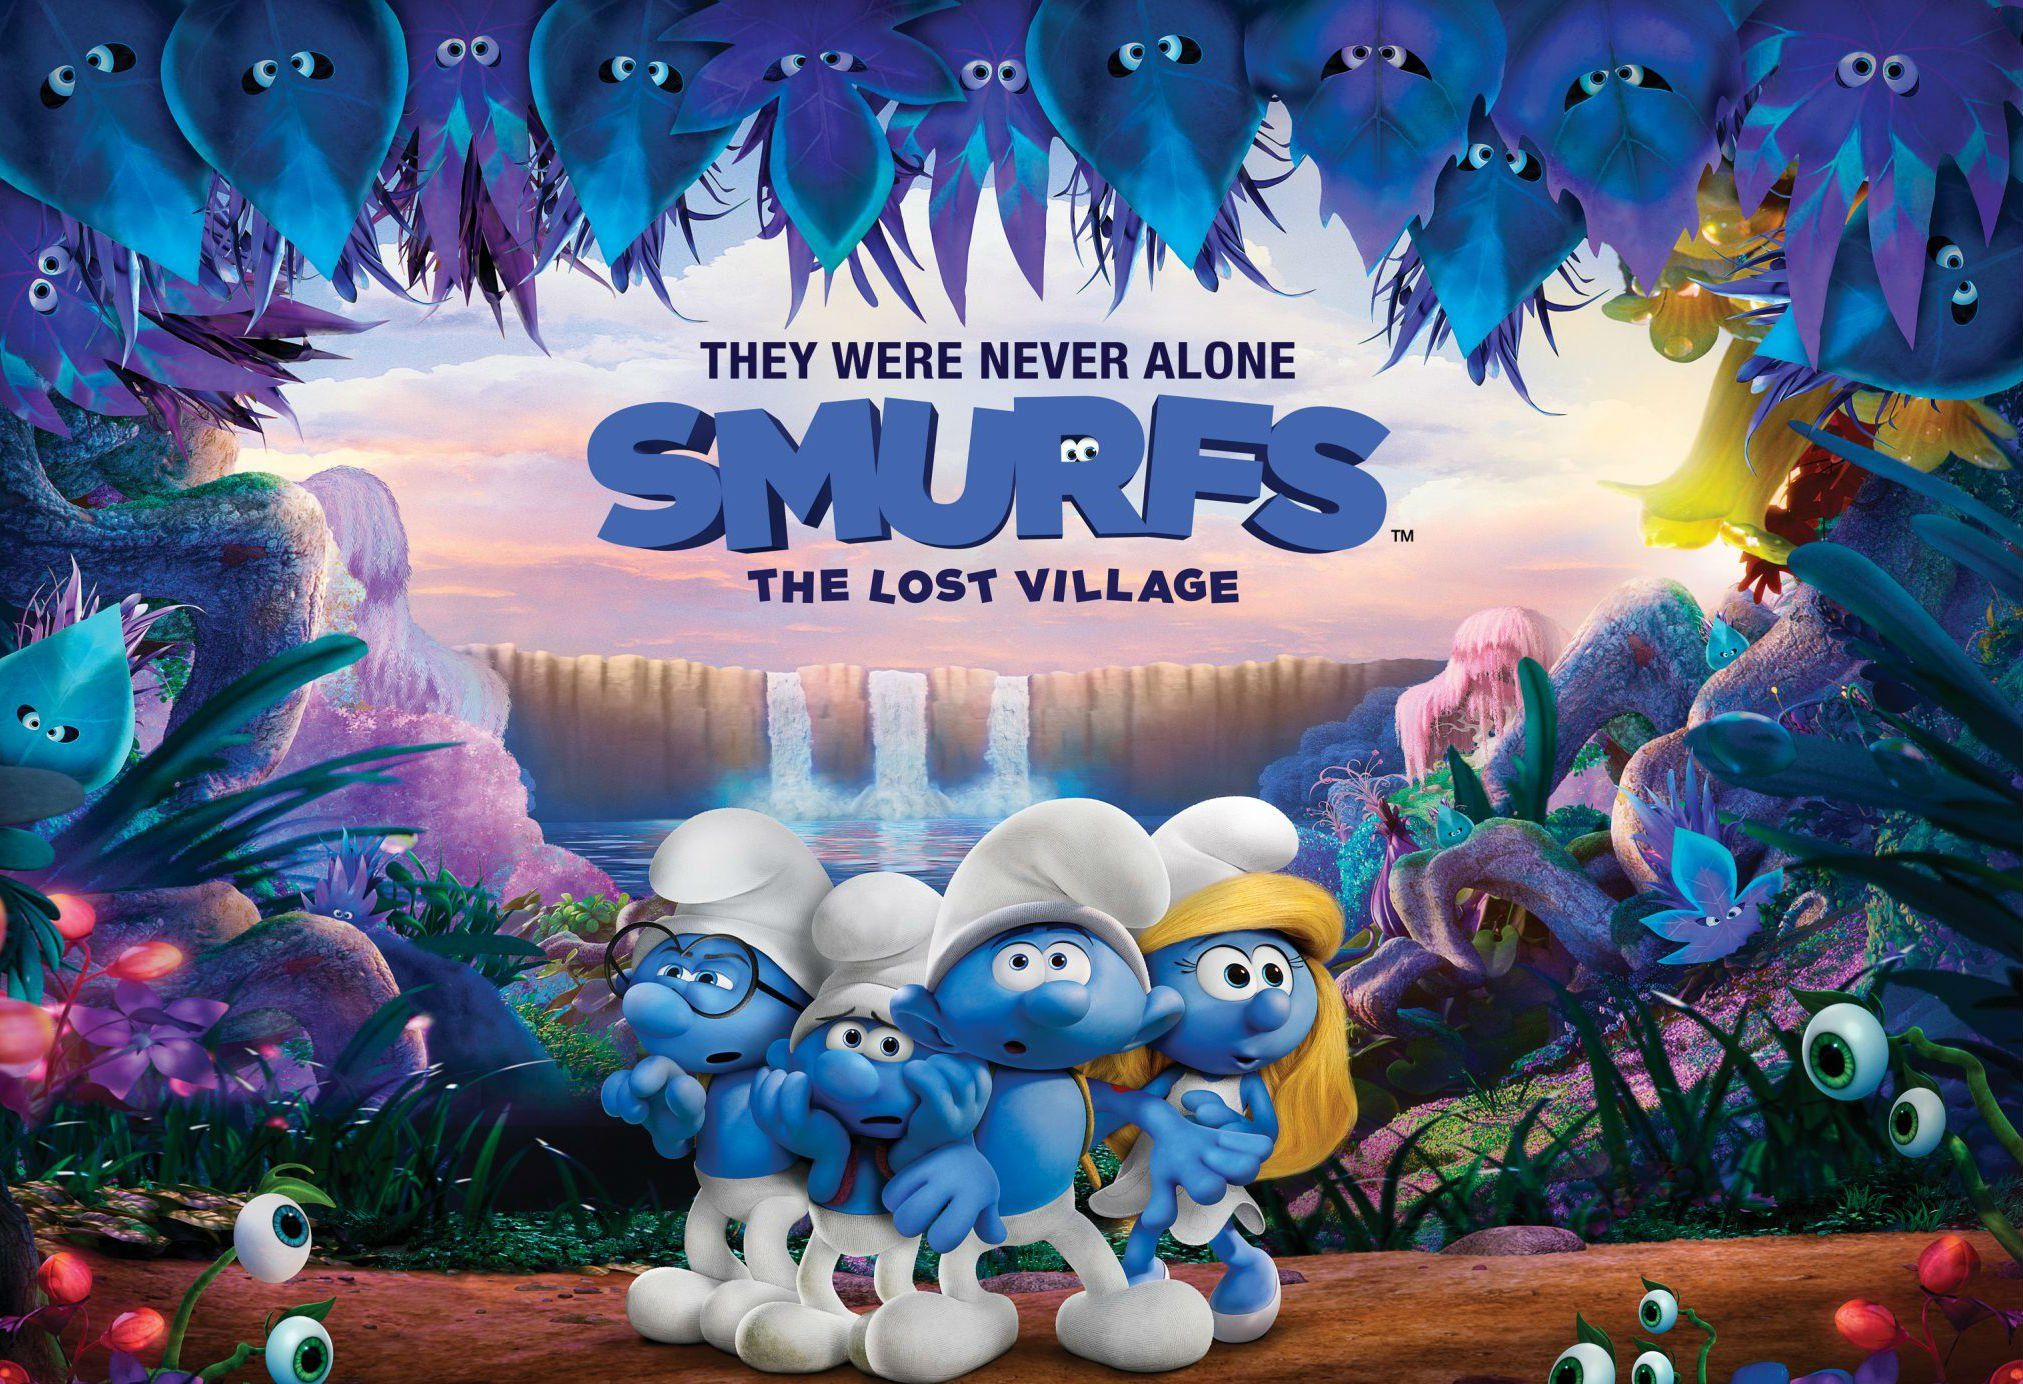 Watch smurfs the lost village 2017 streaming online for free download digital hd movies online free